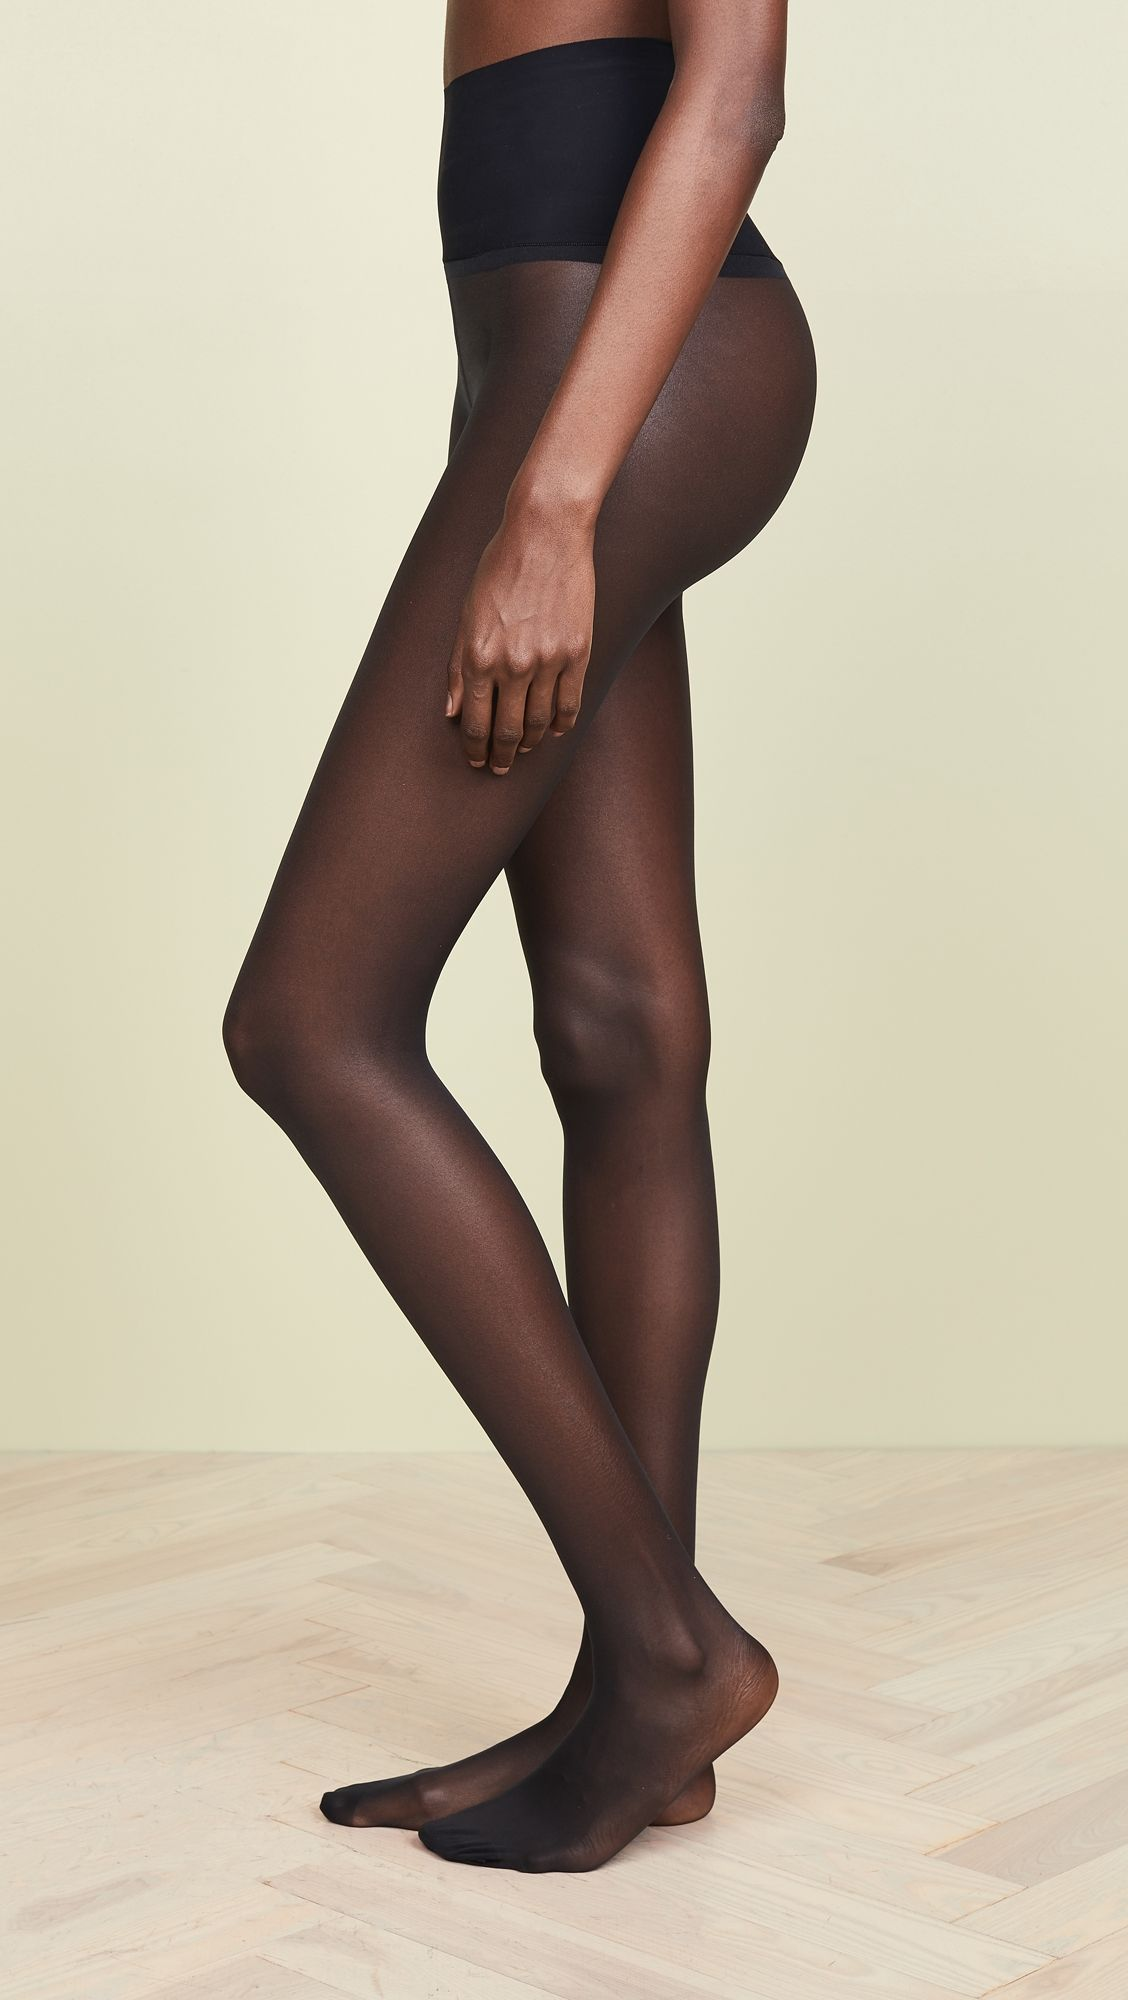 7963c8a67b9af Commando The Keeper Sheer Tights Sheer Tights, Black Pantyhose, Hosiery,  Stockings, Cotton